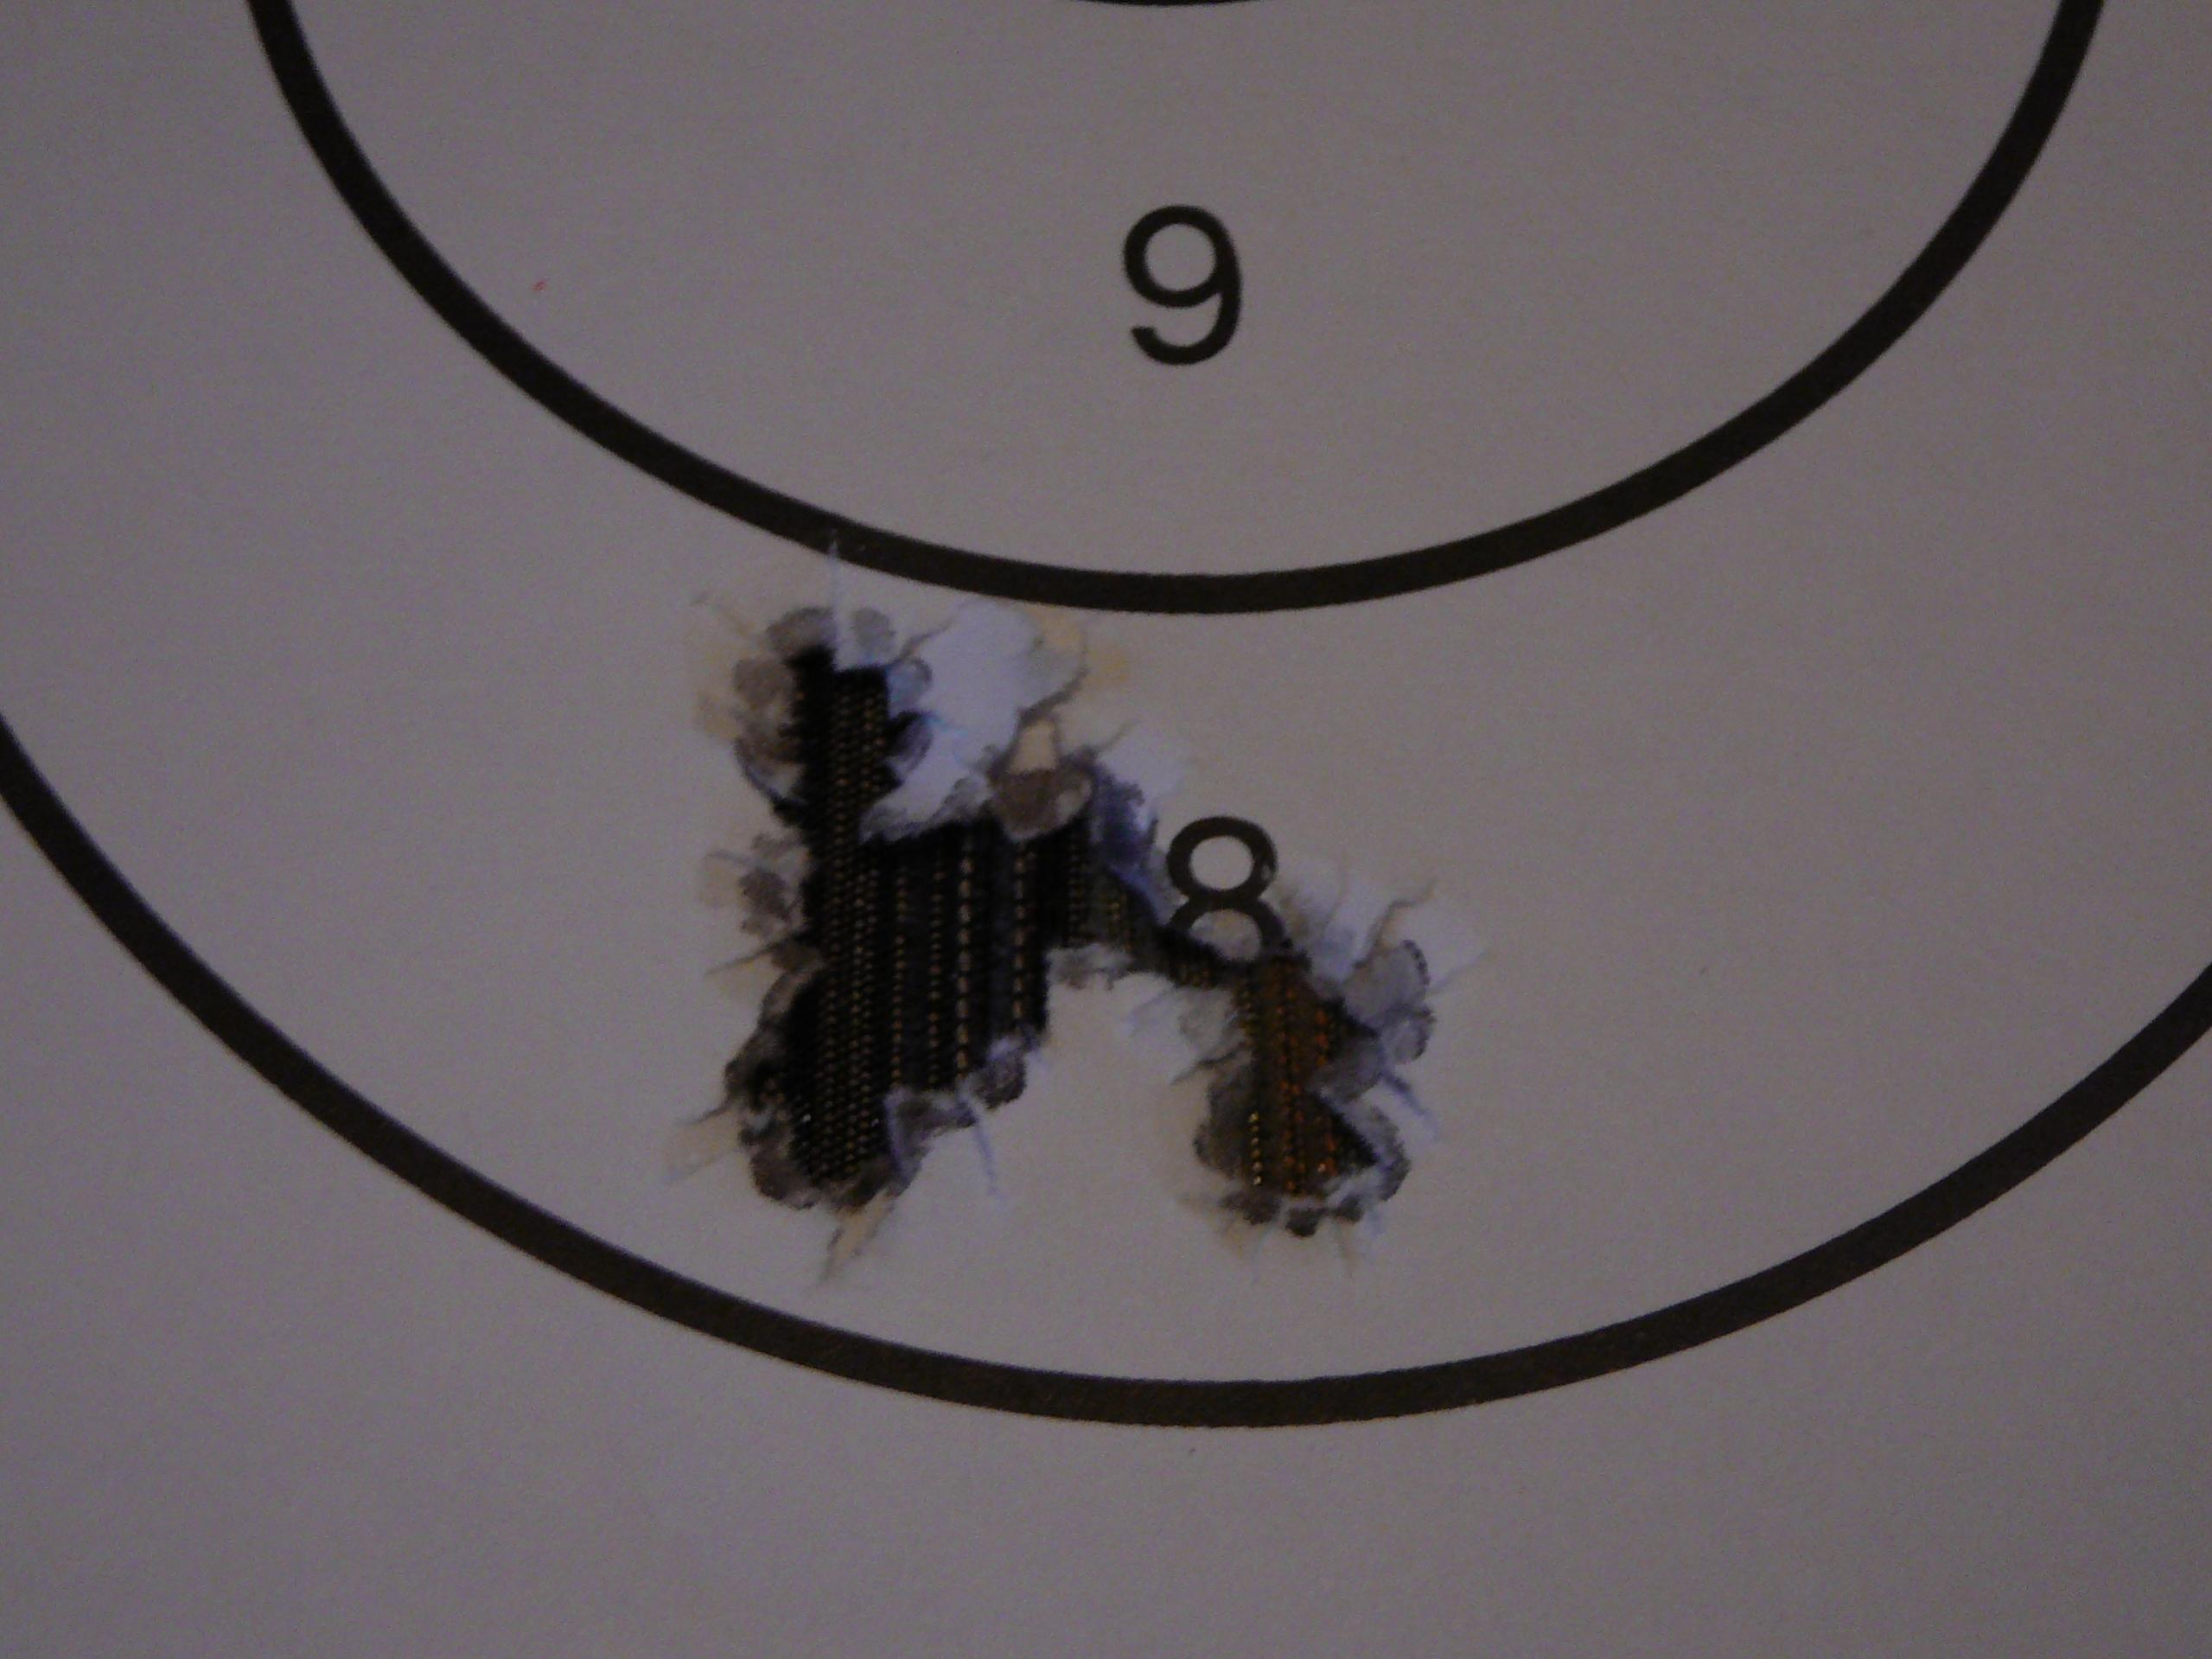 Range Report of First 200 Rounds with the M&P45!-p1020174.jpg